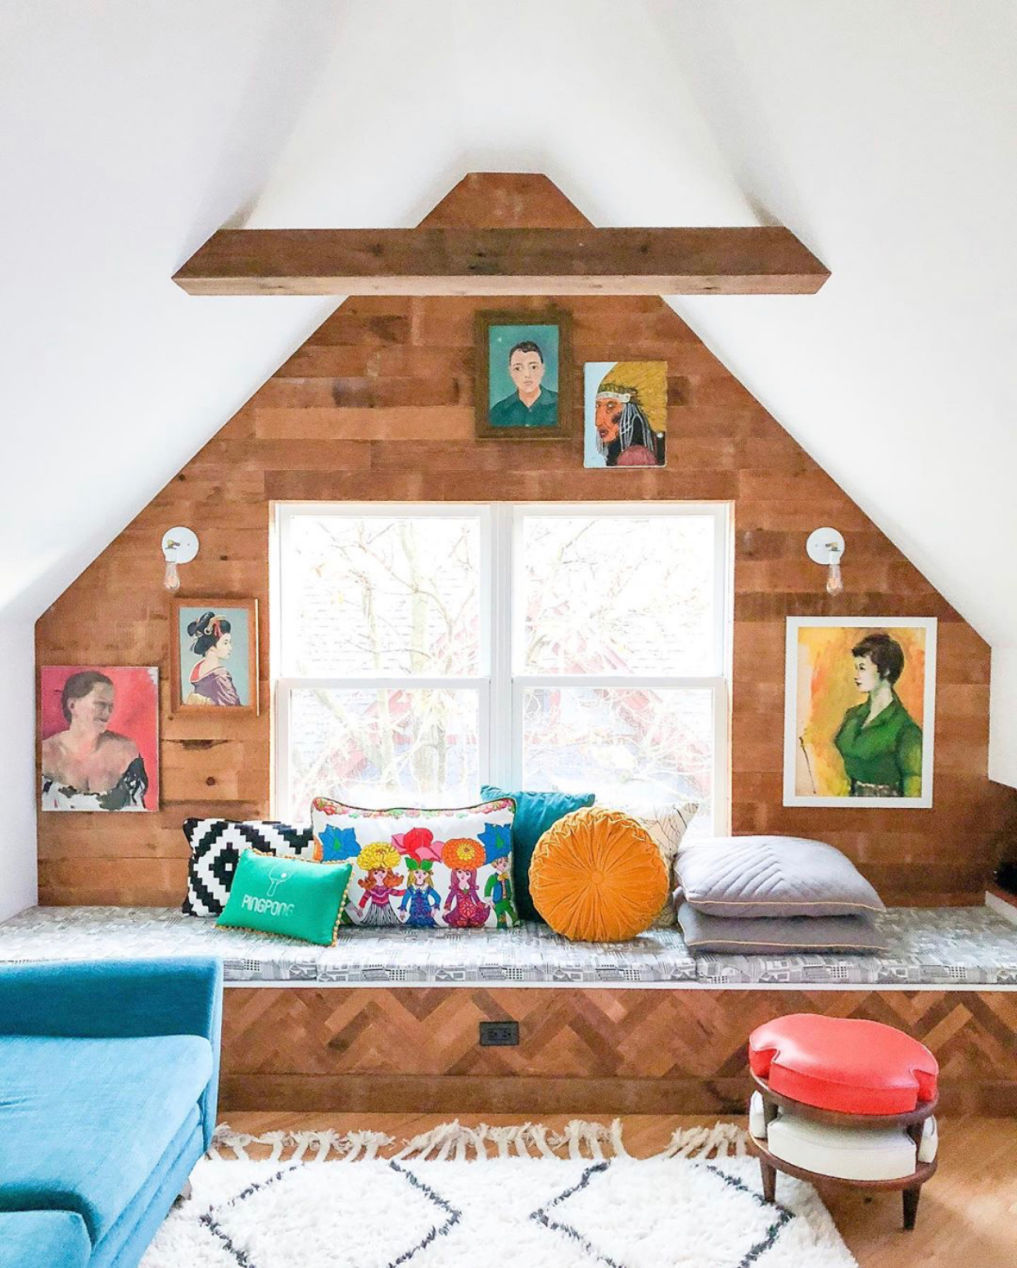 Eclectic Home Tour of Home Ec Interior Design - Love the natural wood shiplap in this attic playroom and the vintage portrait gallery wall #gallerywall #vintagedecor #shiplap #attic #atticdecor #playroom #colorlovers #colorfulinteriors #vintagemodern #bohodecor #eclecticdecor